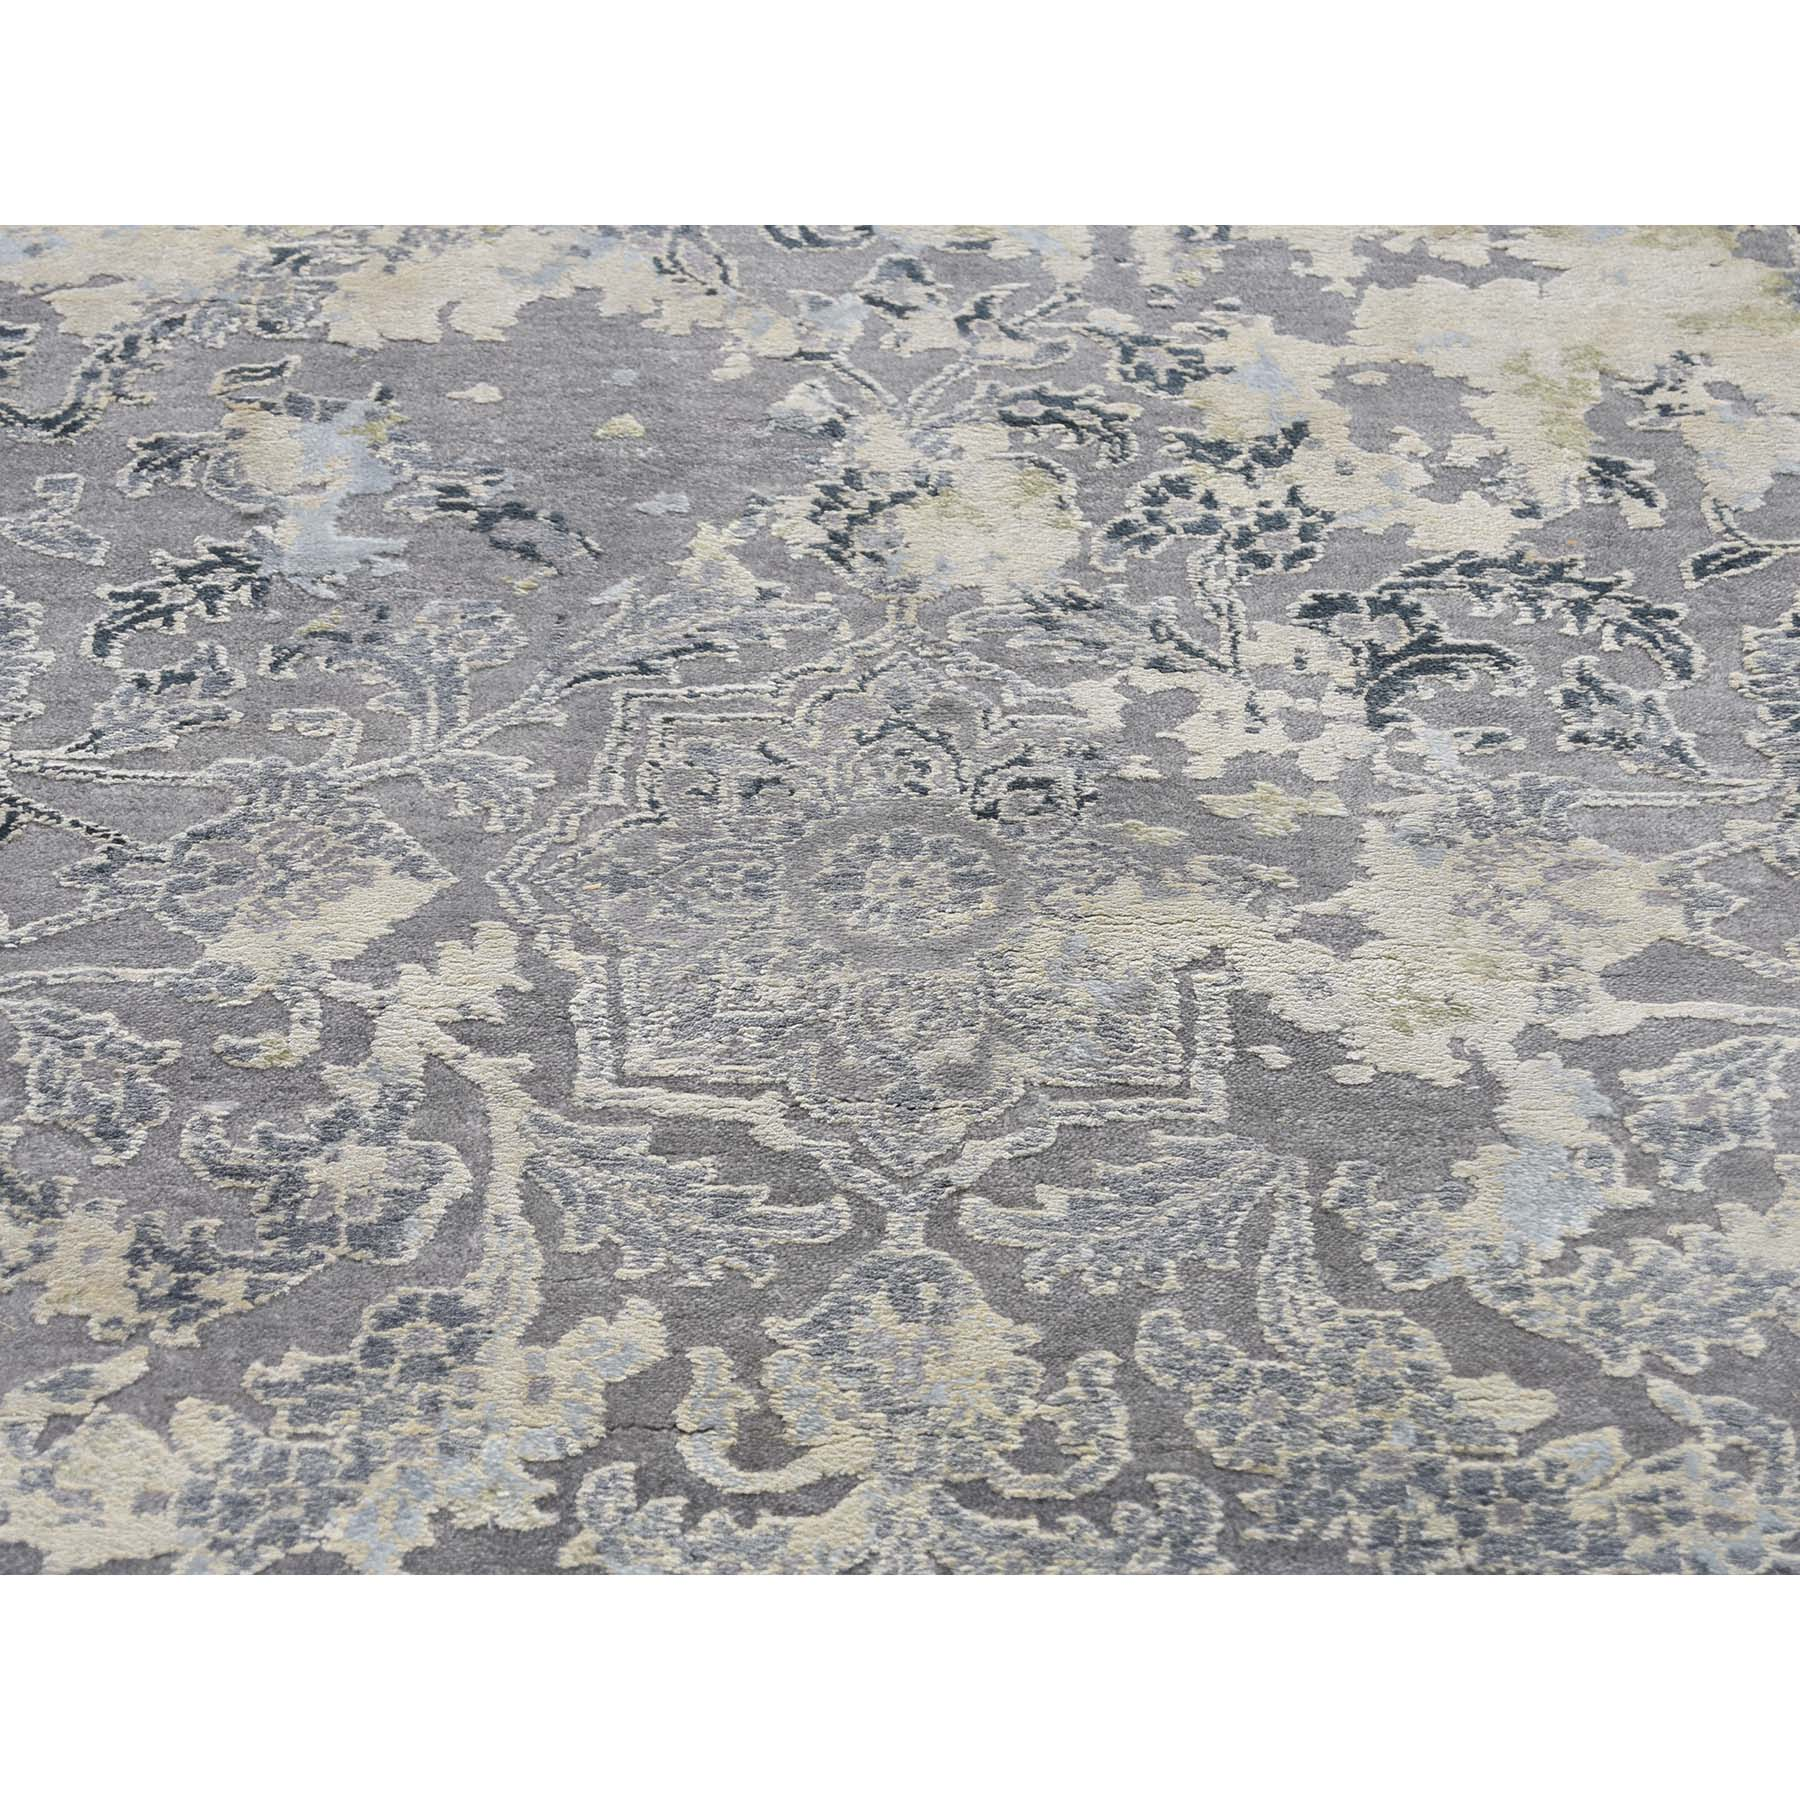 9'x12' Broken Persian Design Wool With Pure Silk Hand-Knotted Oriental Rug